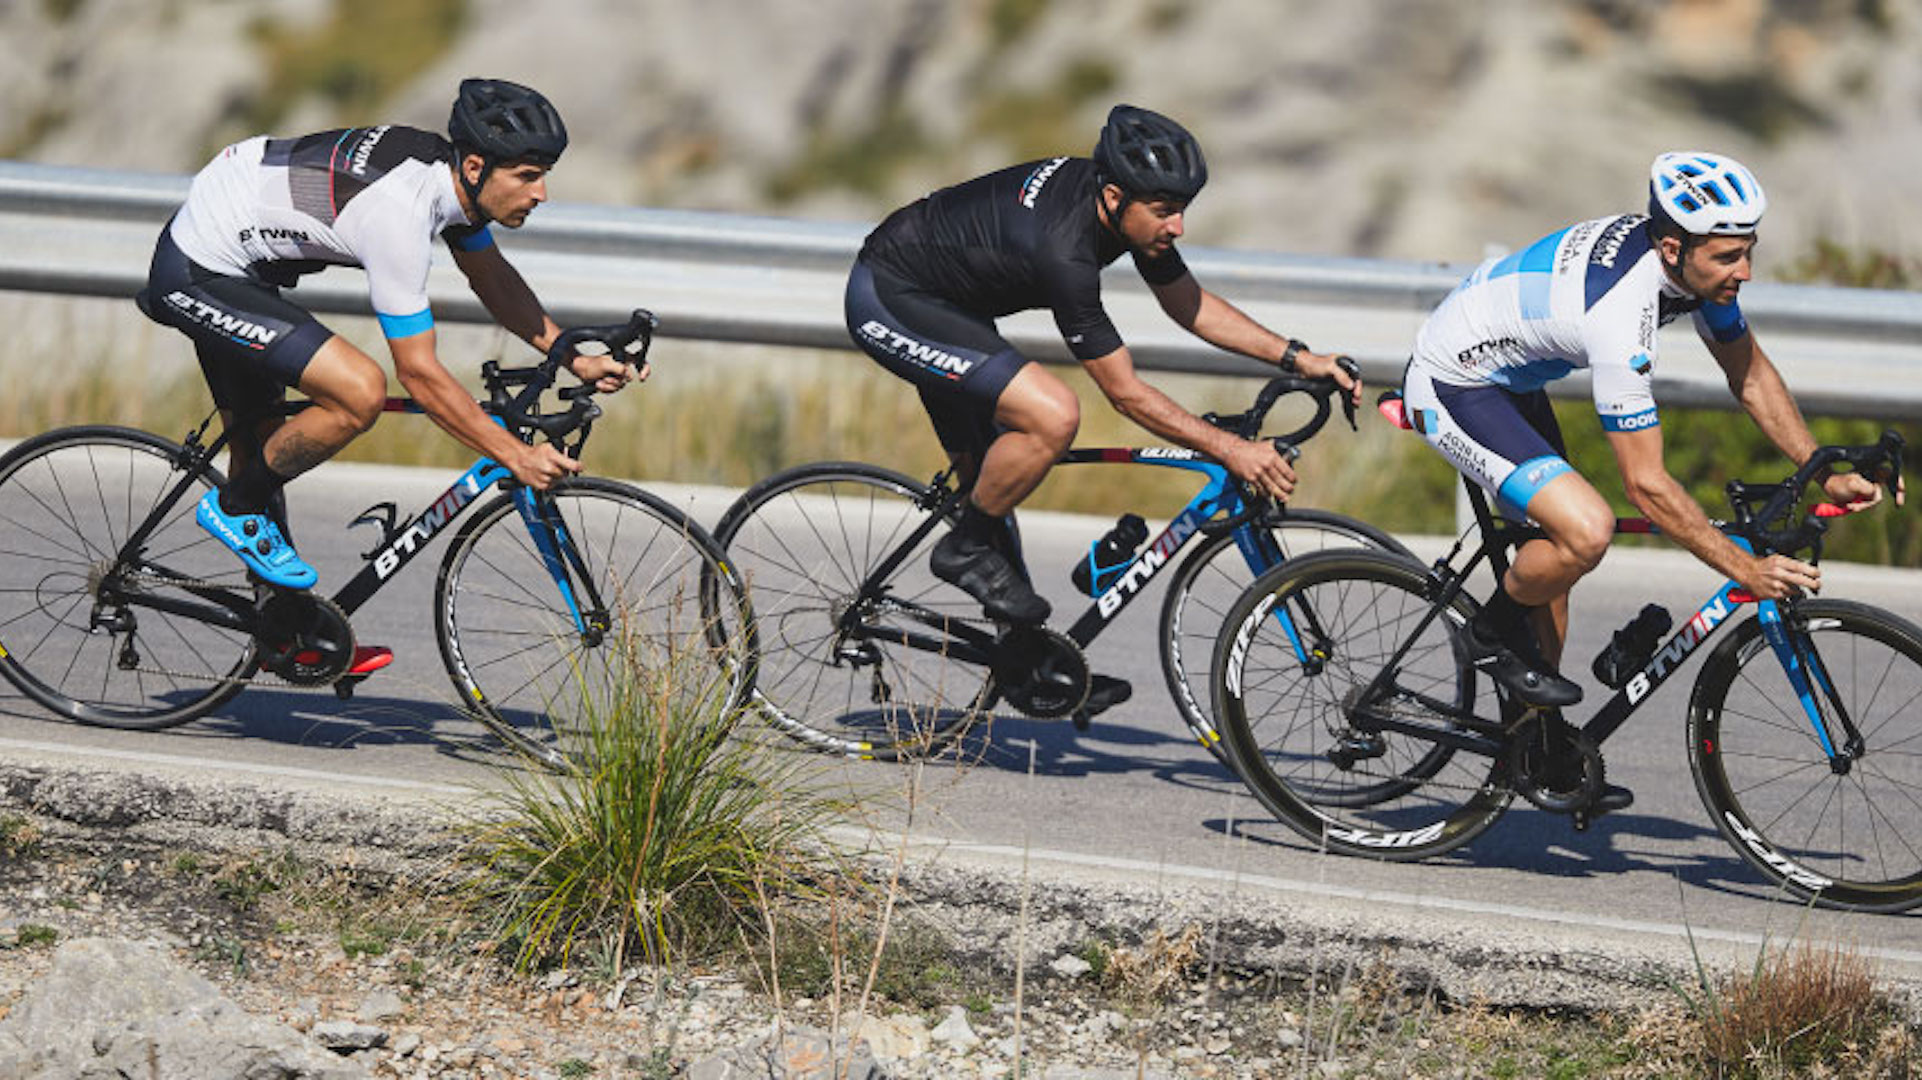 fb4cb922307 Best road bike for under £500: cheap road bikes that won't let you down in  2019 | T3